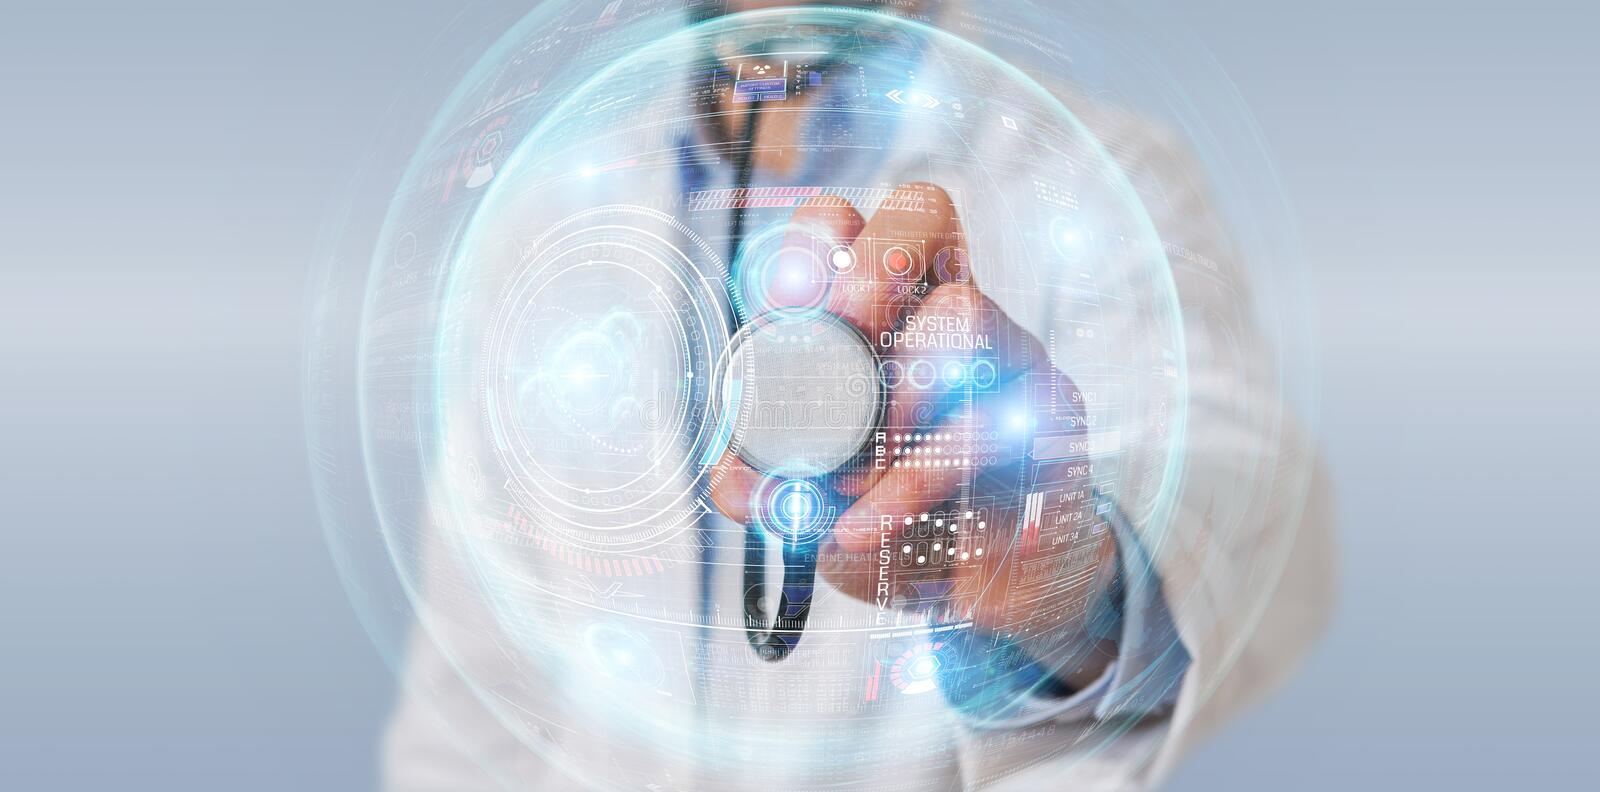 Scientist using digital technological interface with datas 3D rendering stock illustration